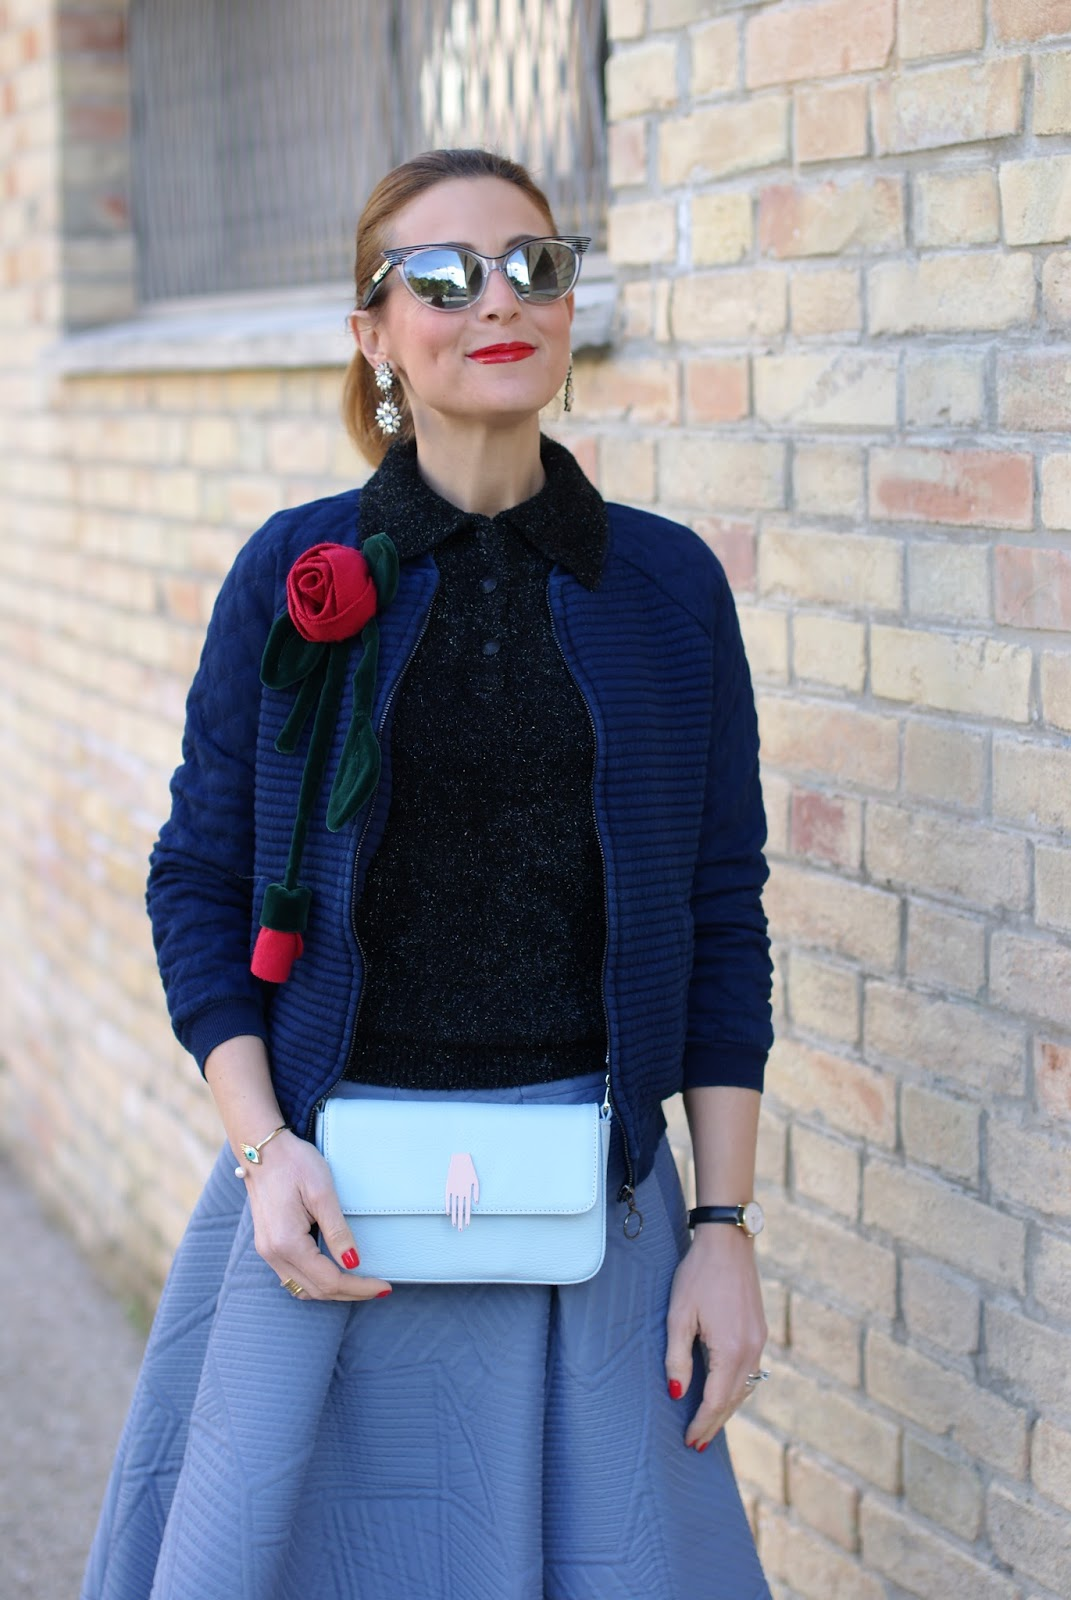 Valentine's day romantic outfit with bomber jacket, Lazzari bag, asymmetrical midi skirt, red roses handmade brooch on Fashion and Cookies fashion blog, fashion blogger style